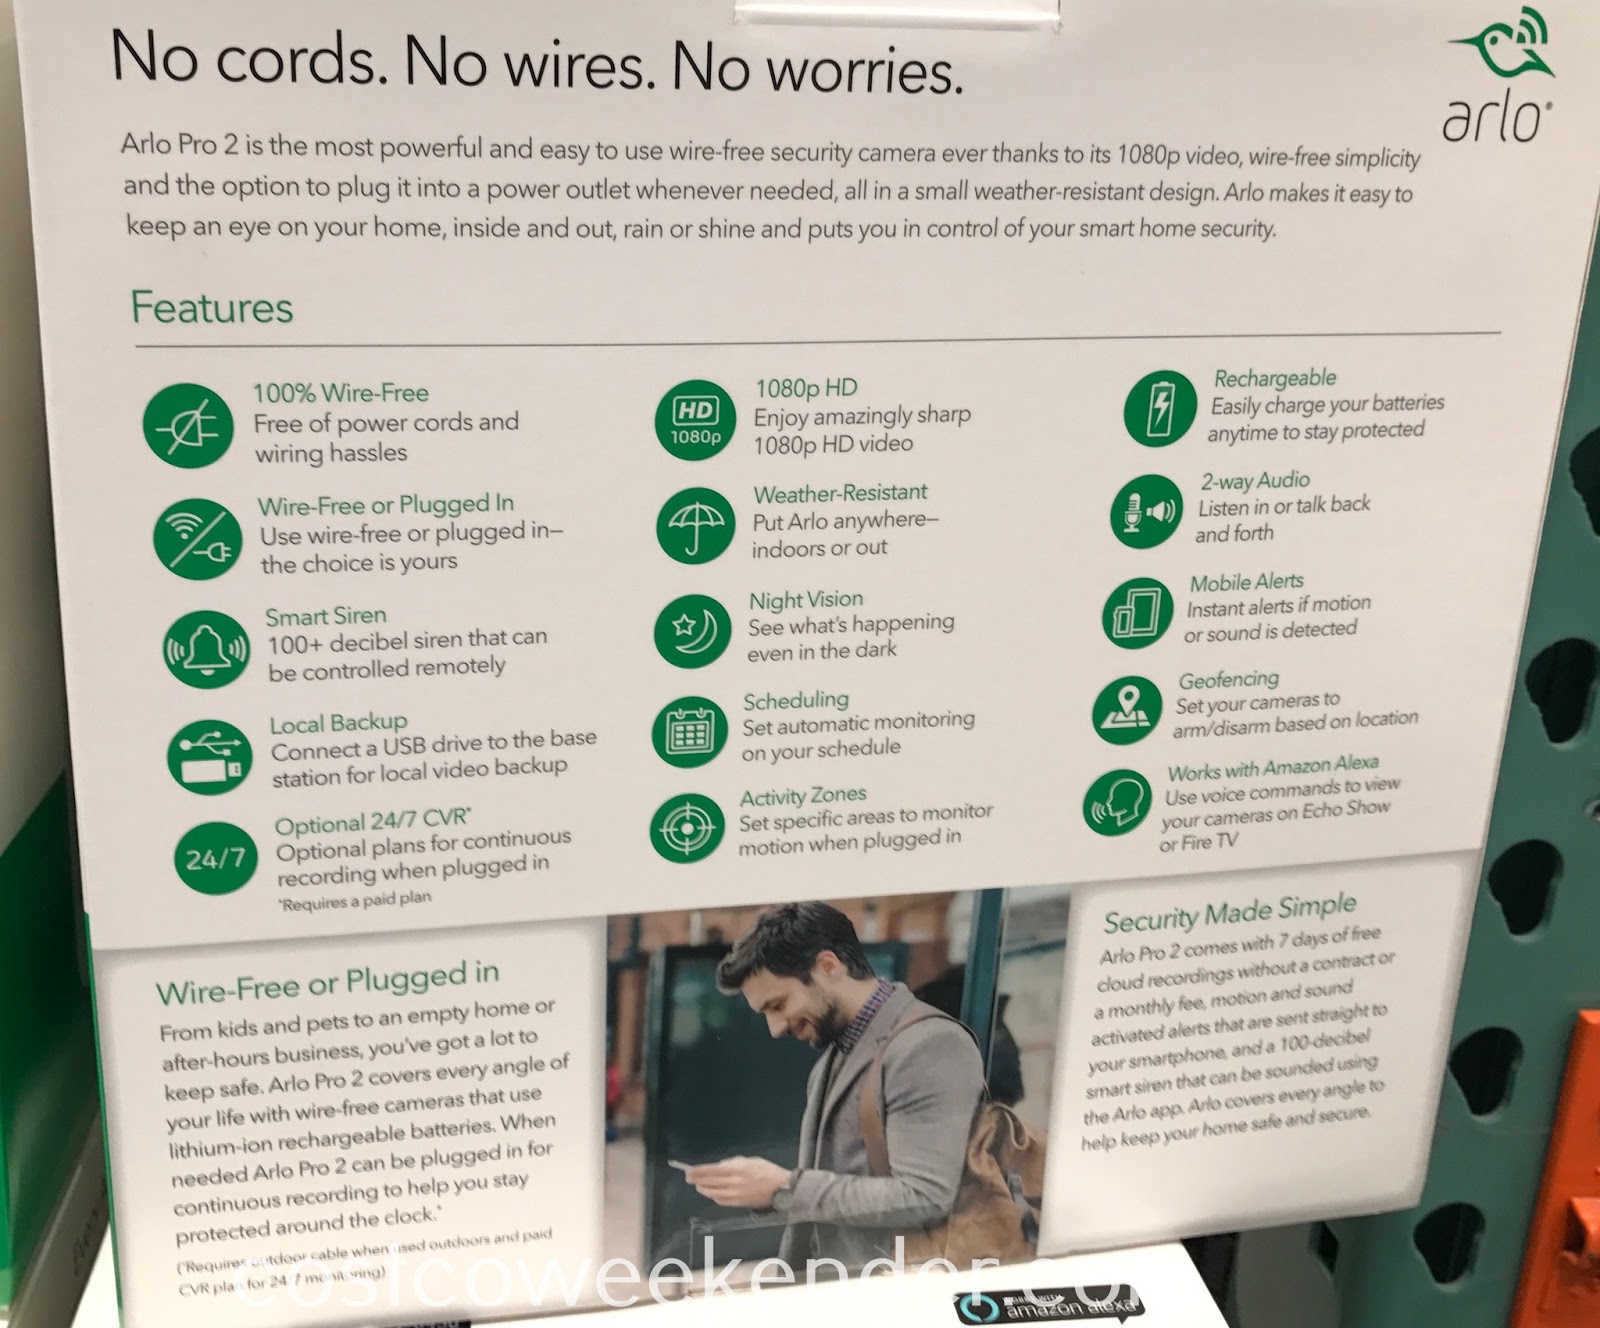 Arlo Pro 2 Wire-Free Security Cameras (model no  VCS4500C) | Costco